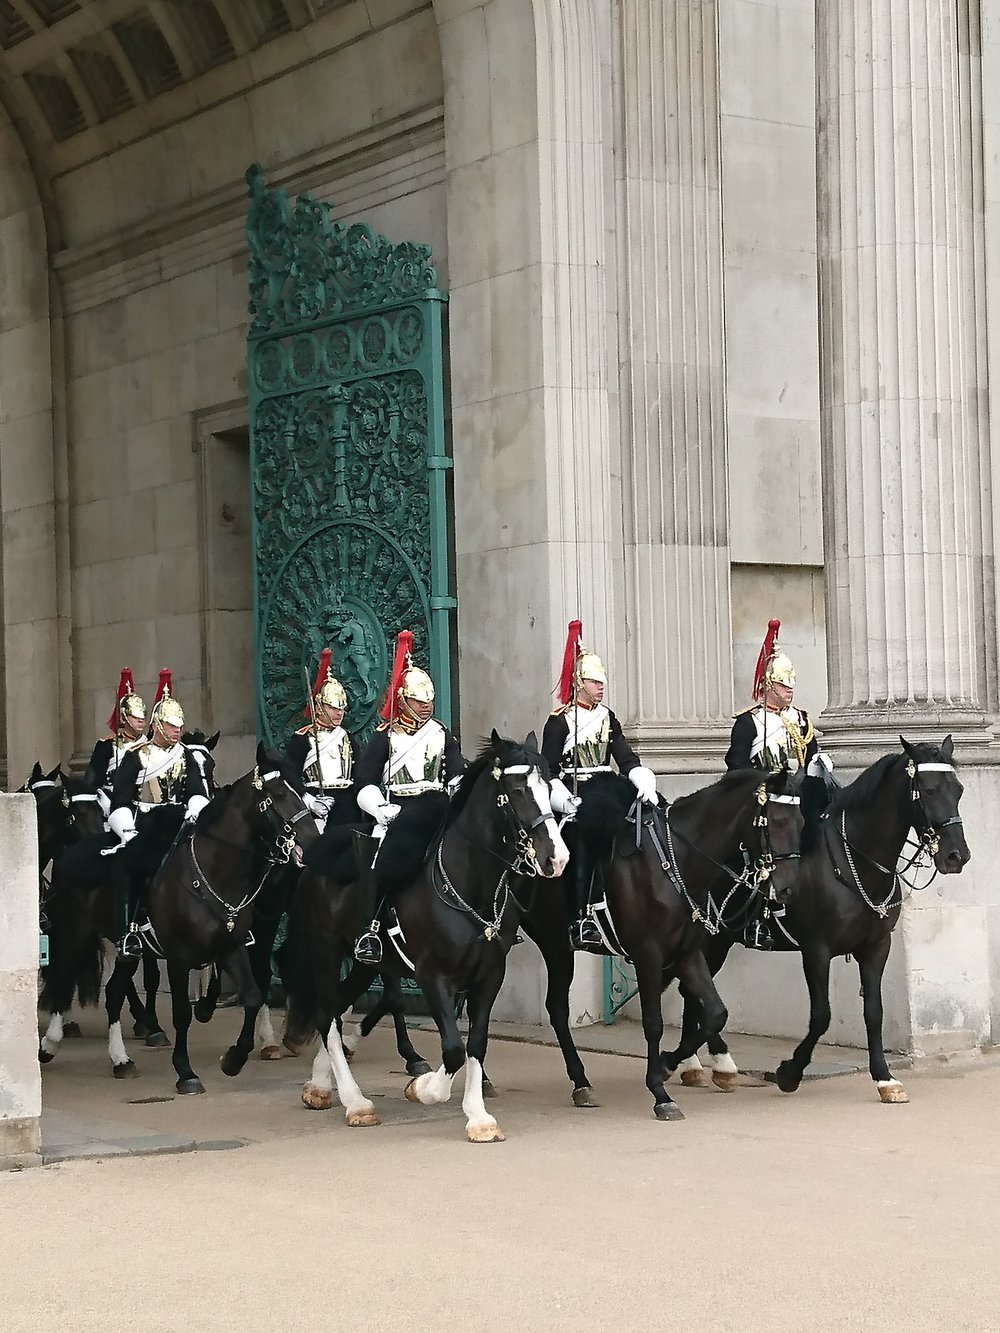 Mounted guards Wellington Arch